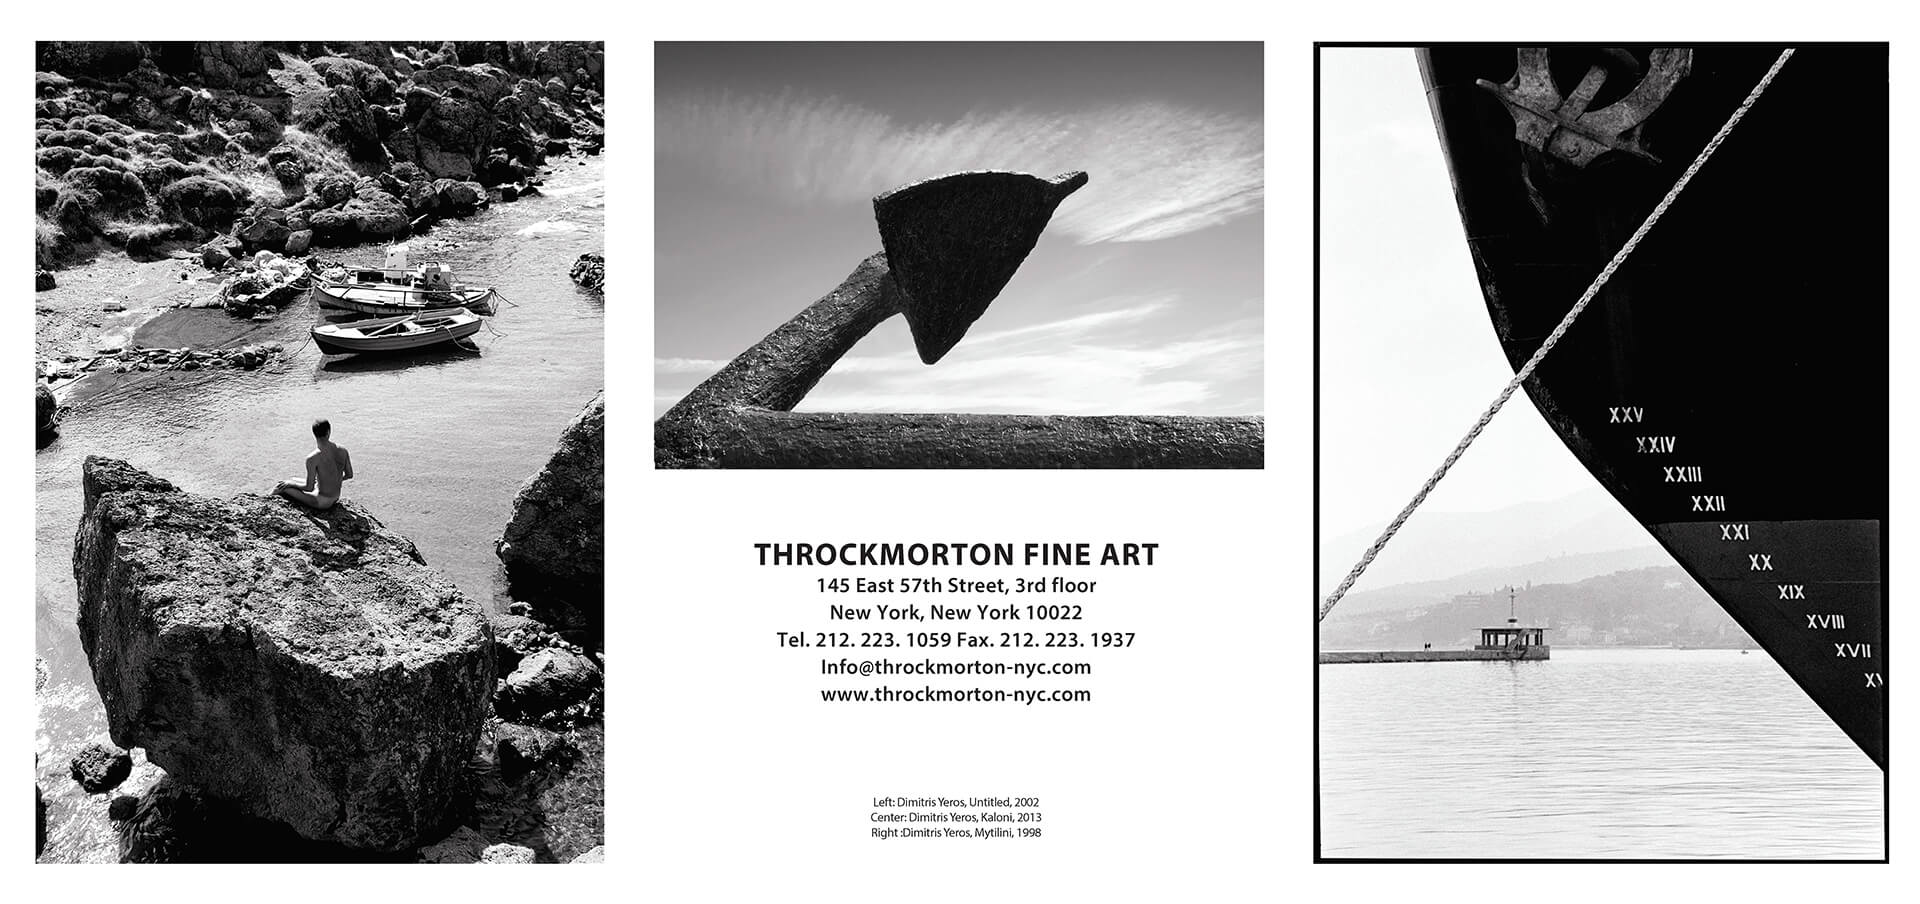 Throckmorton Fine Art